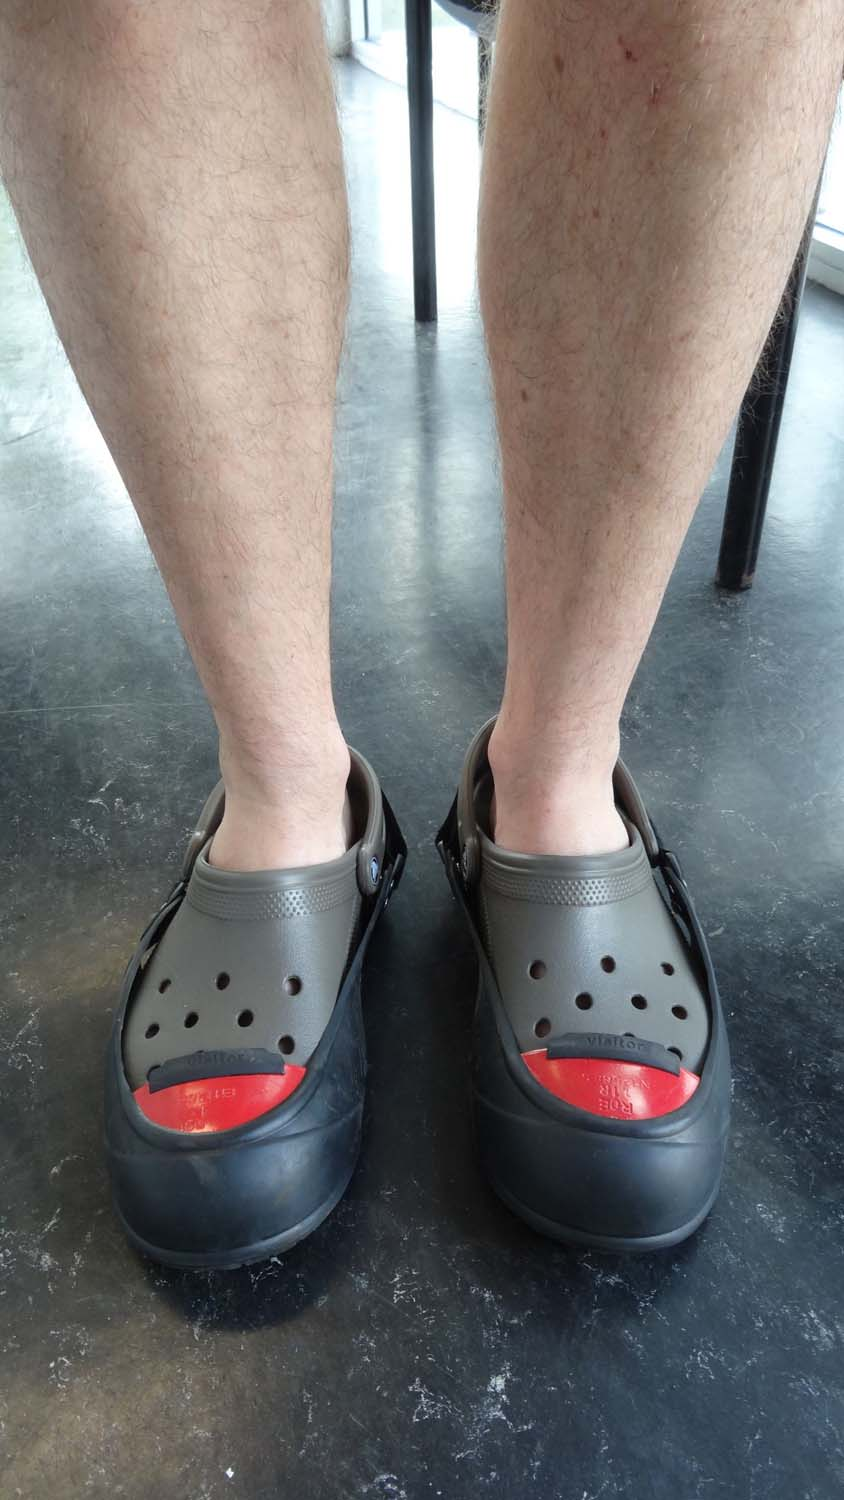 crocs become safety shoes!